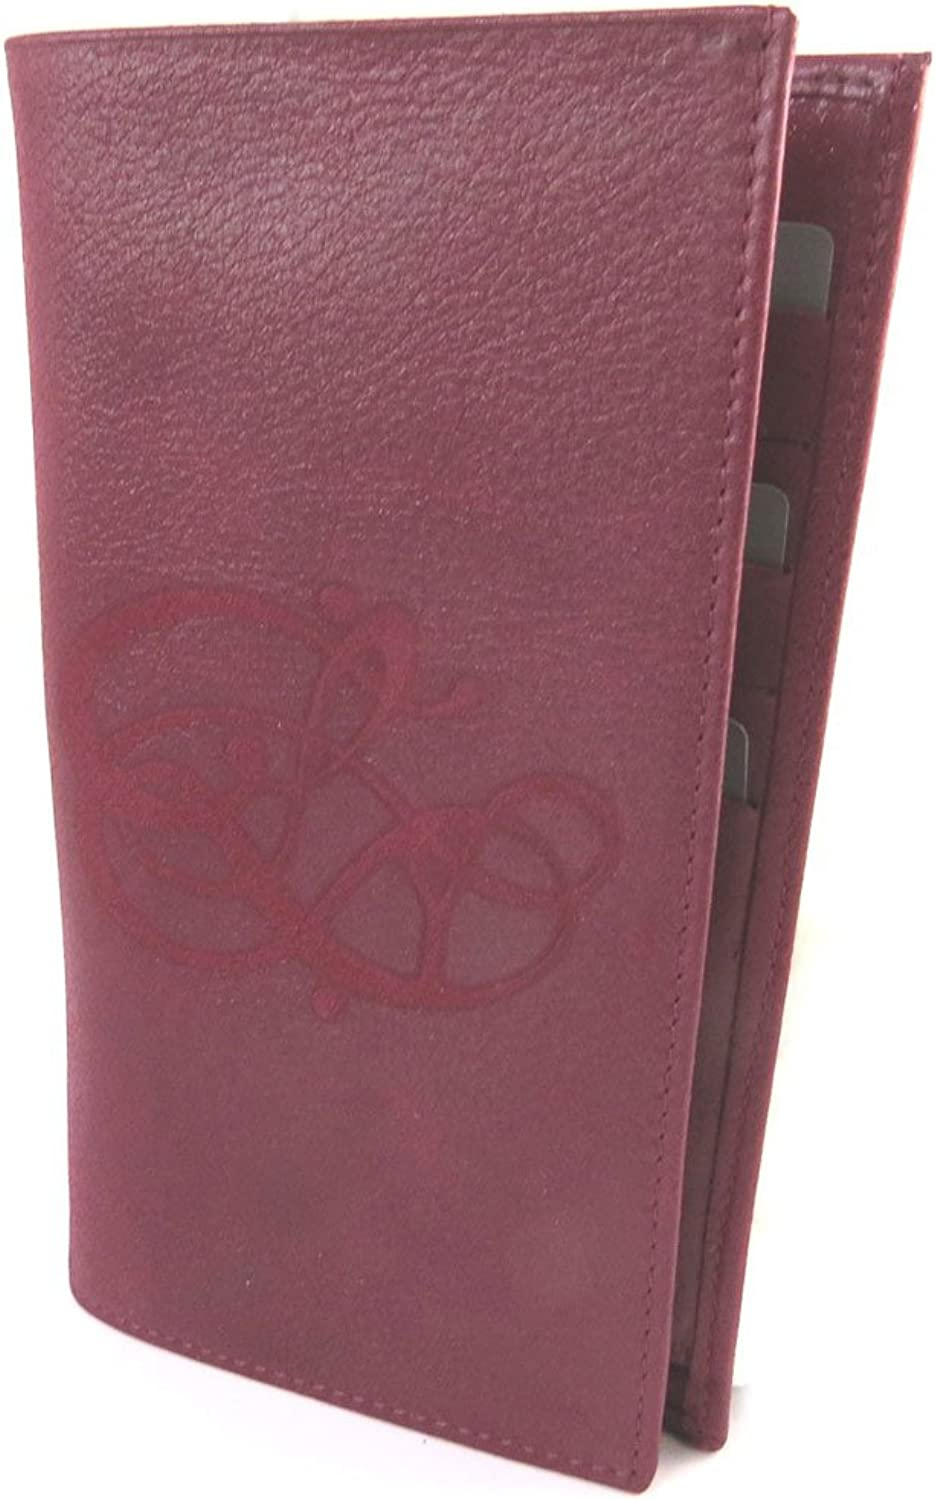 Les Trésors De Lily [N8916]  Checkbook holder glitter leather 'Les Trésors De Lily' ruby     Red  19x11 cm (7.48''x4.33'').